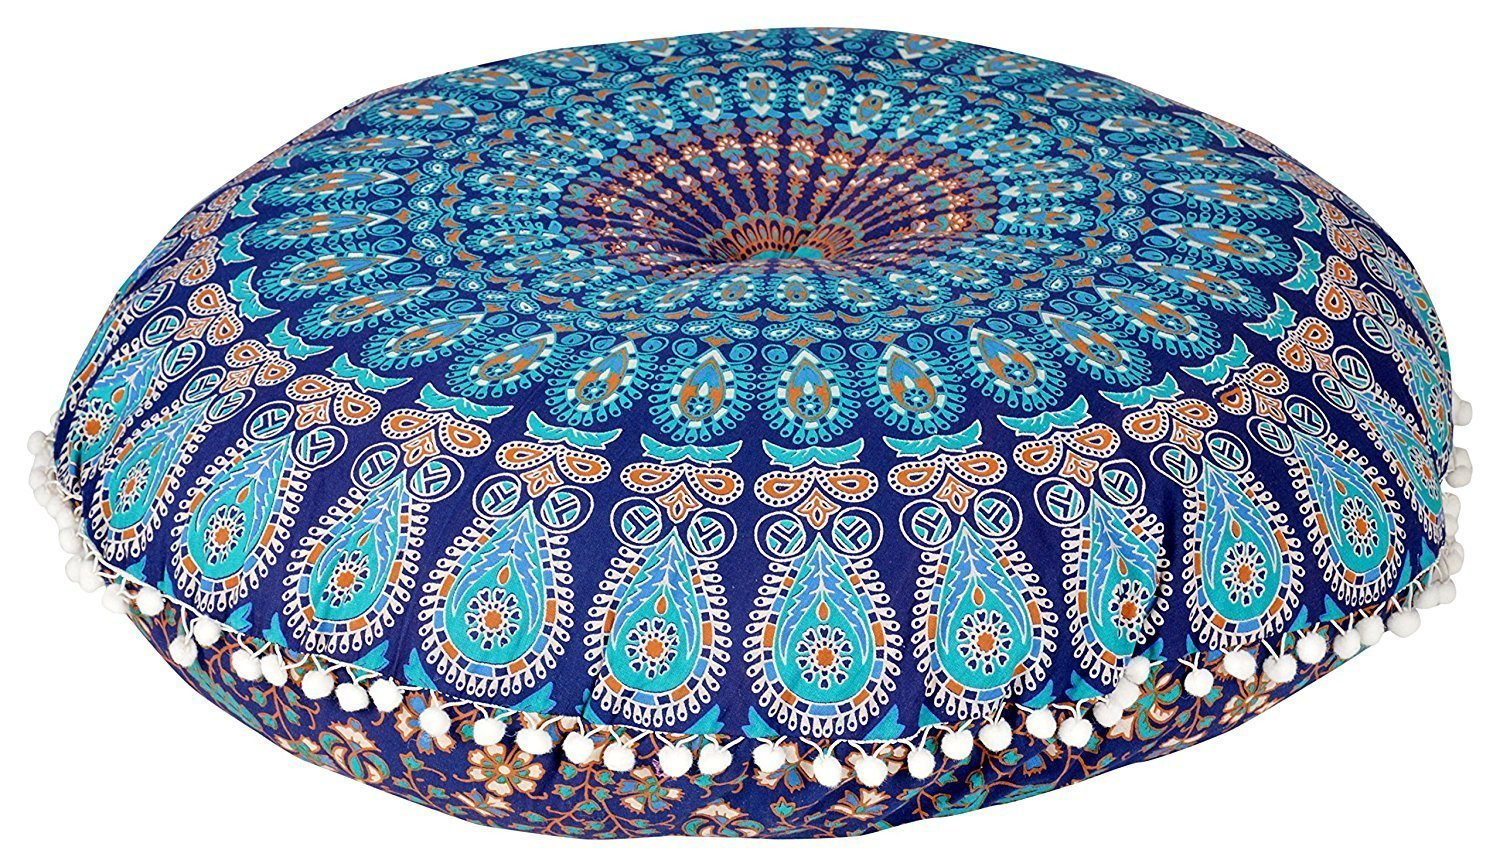 Mandala Floor Pillow covers Blue Round Bohemian Cushion Cover Ottoman Pouf Cover Hippie Decorative Cushion Cases (Blue)